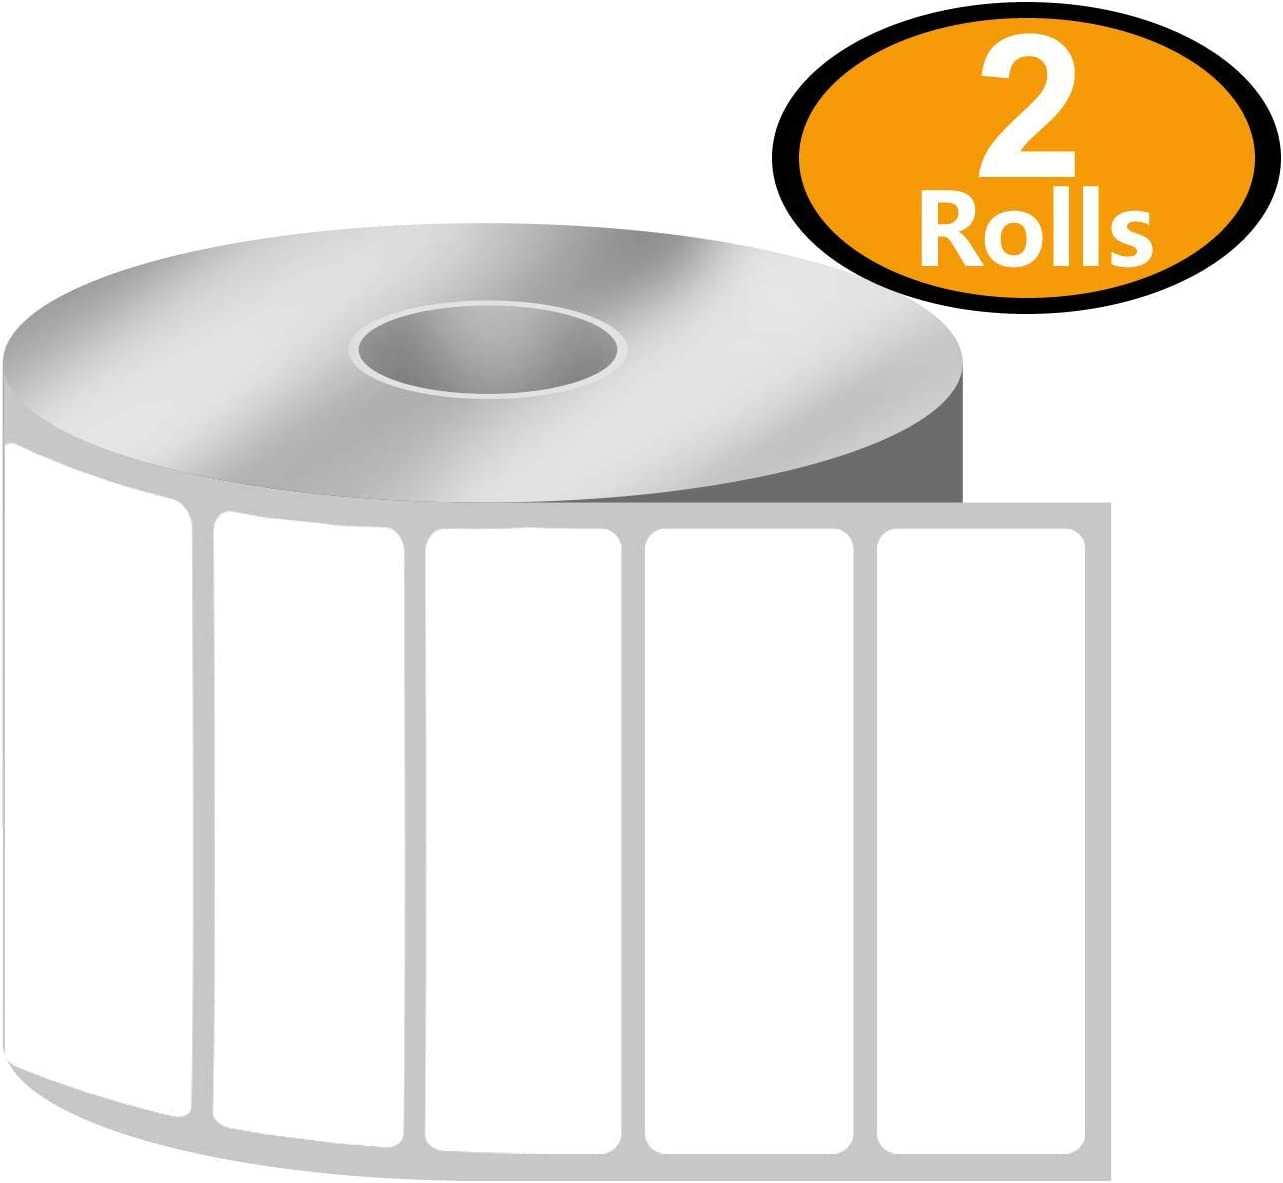 4 x 1 Direct Thermal Zebra//Eltron Compatible Labels 1 Rolls, 1375//Roll Premium Resolution /& Adhesive